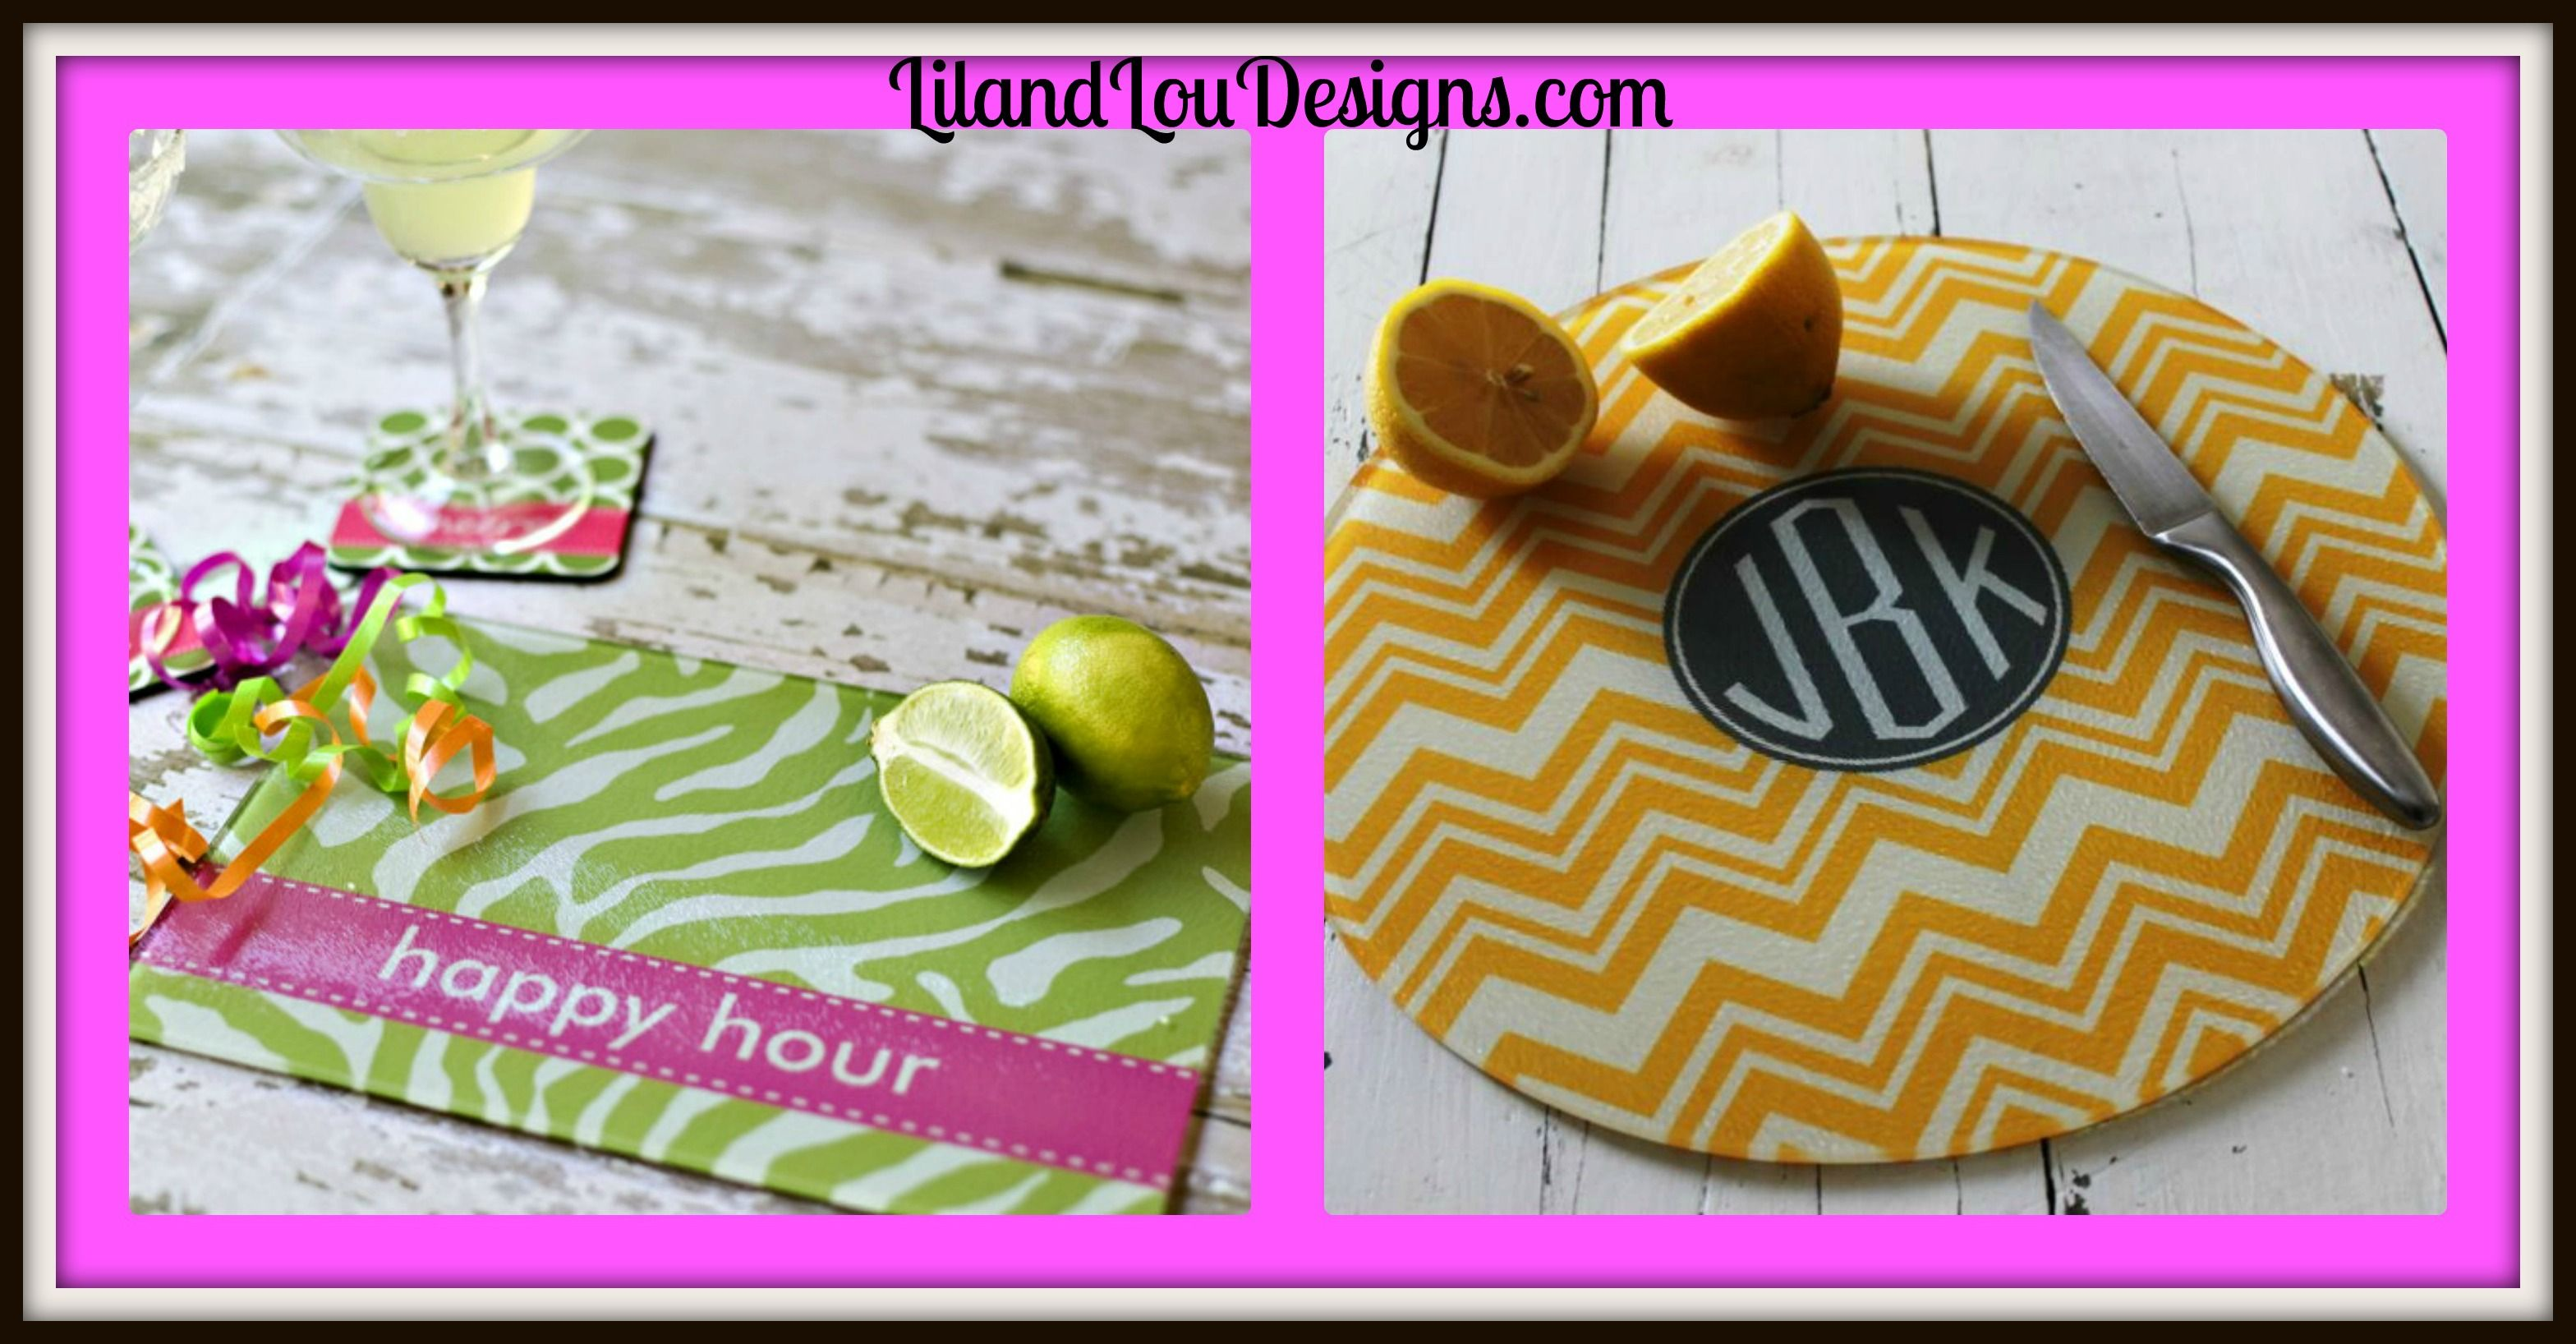 WIN a Personalized cutting board at Lil and Lou Designs - giveaway ends Thursday 25th!